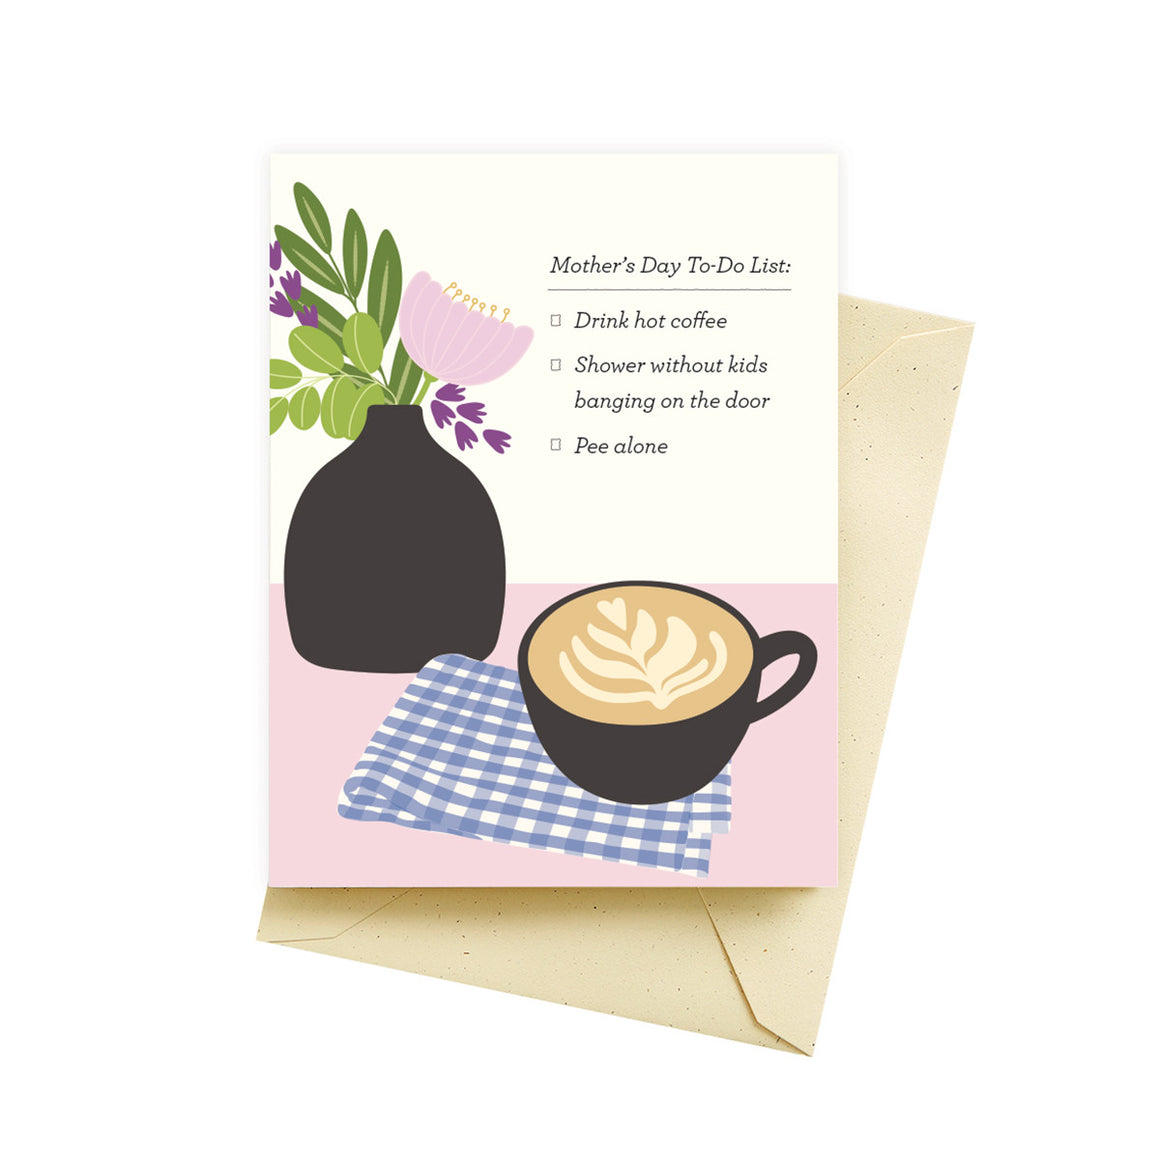 To Do List Mother's Day - Greeting Card